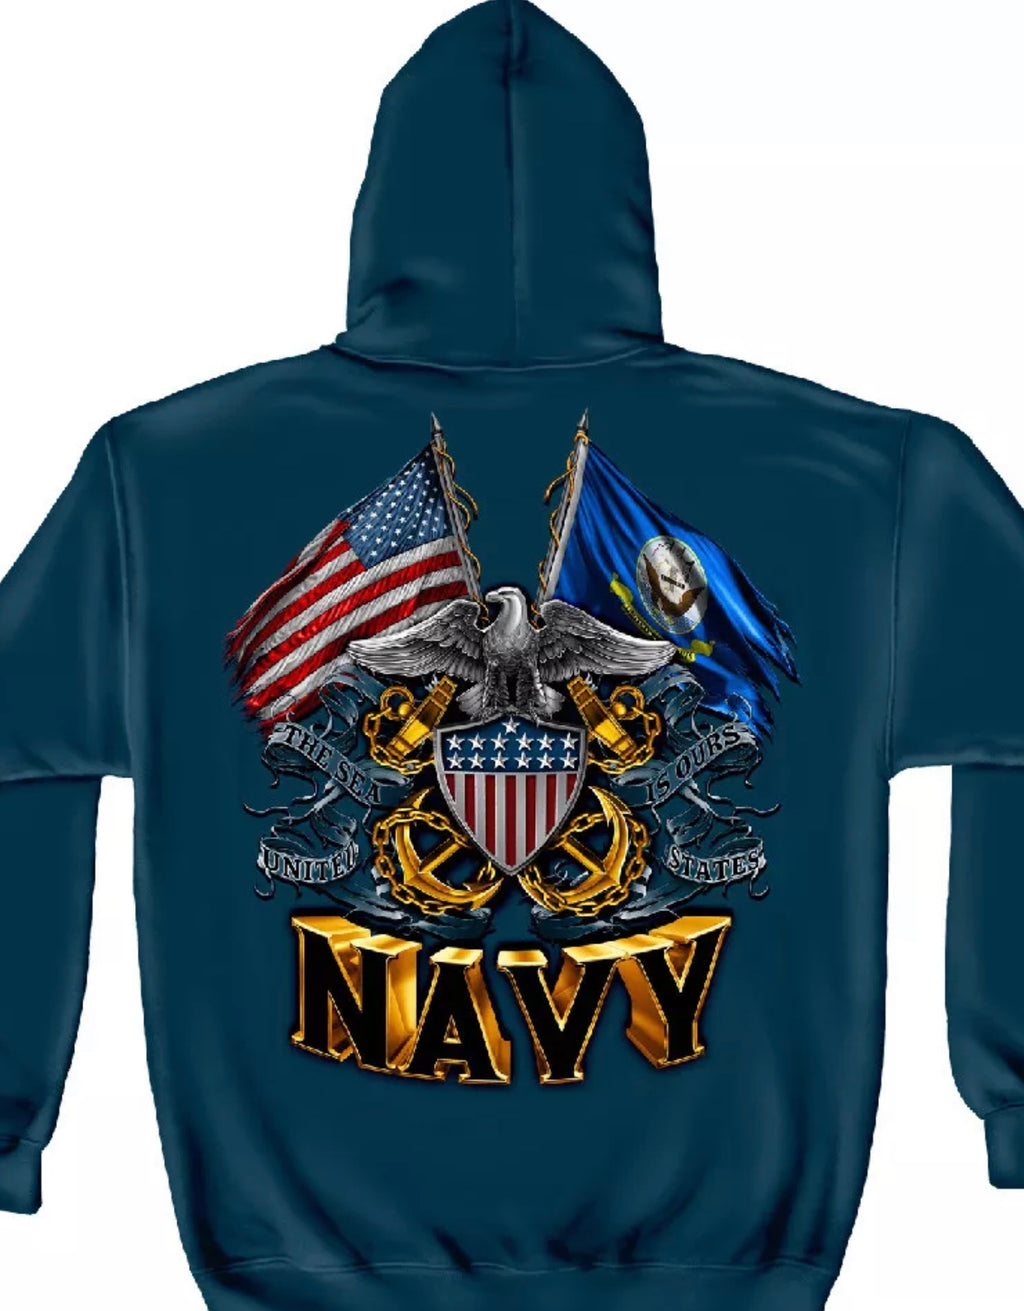 Navy 2 Flag Sweatshirt - The Wall Kids, Inc.